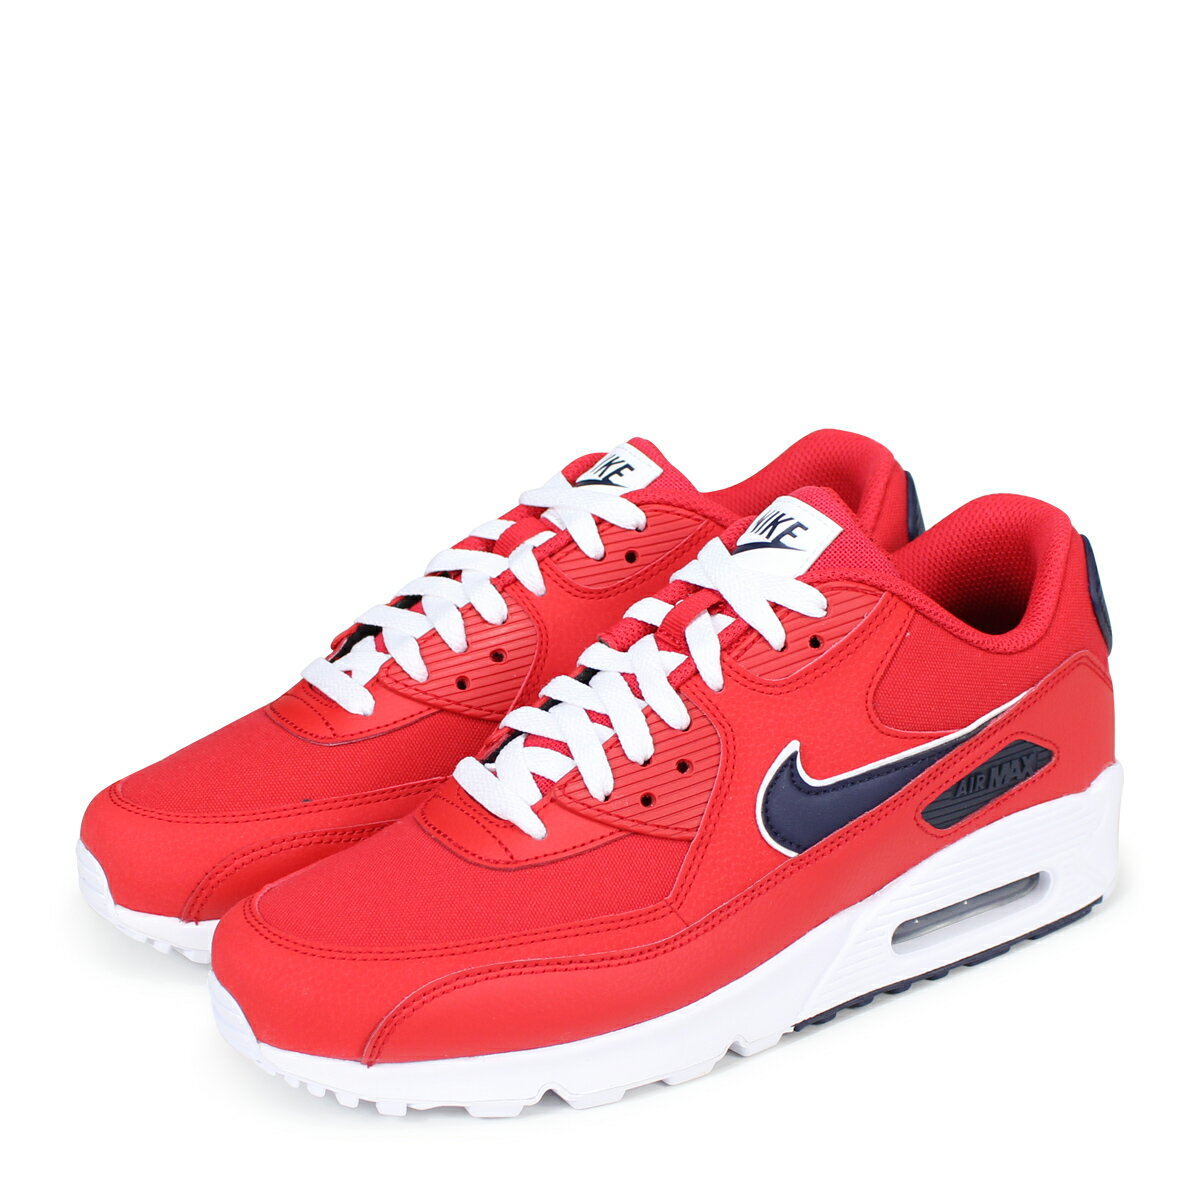 best sneakers 1530f 15077 NIKE AIR MAX 90 ESSENTIAL Kie Ney AMAX 90 essential sneakers men AJ1285-601  red  load planned Shinnyu load in reservation product 6 28 containing   186